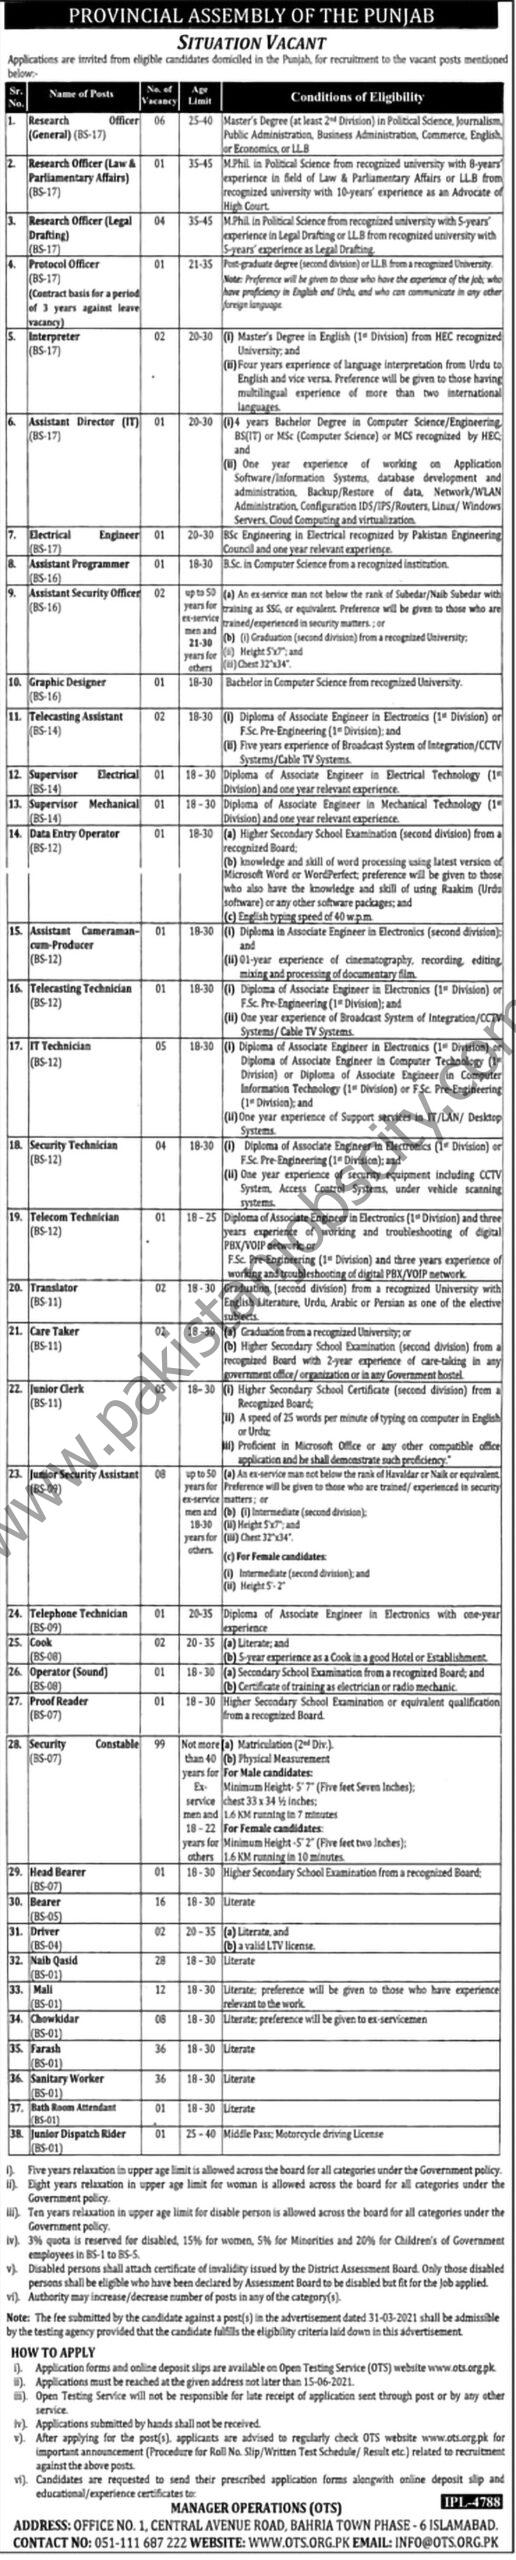 Provincial Assembly of the Punjab Jobs June 2021